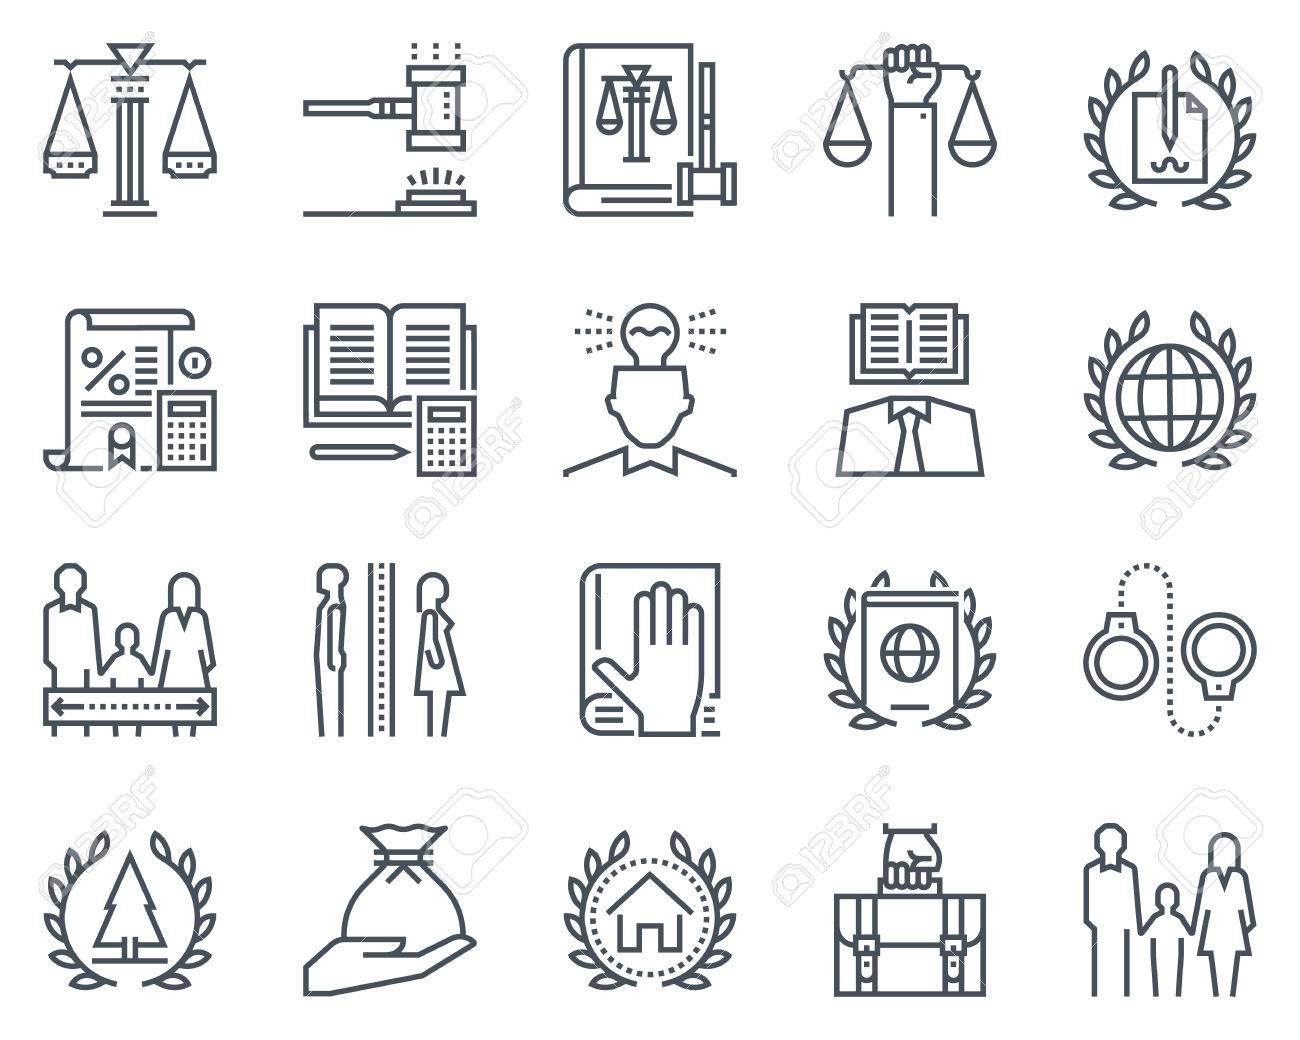 Law and justice icon set suitable for info graphics, websites and print media. Black and white flat line icons. - 55927434